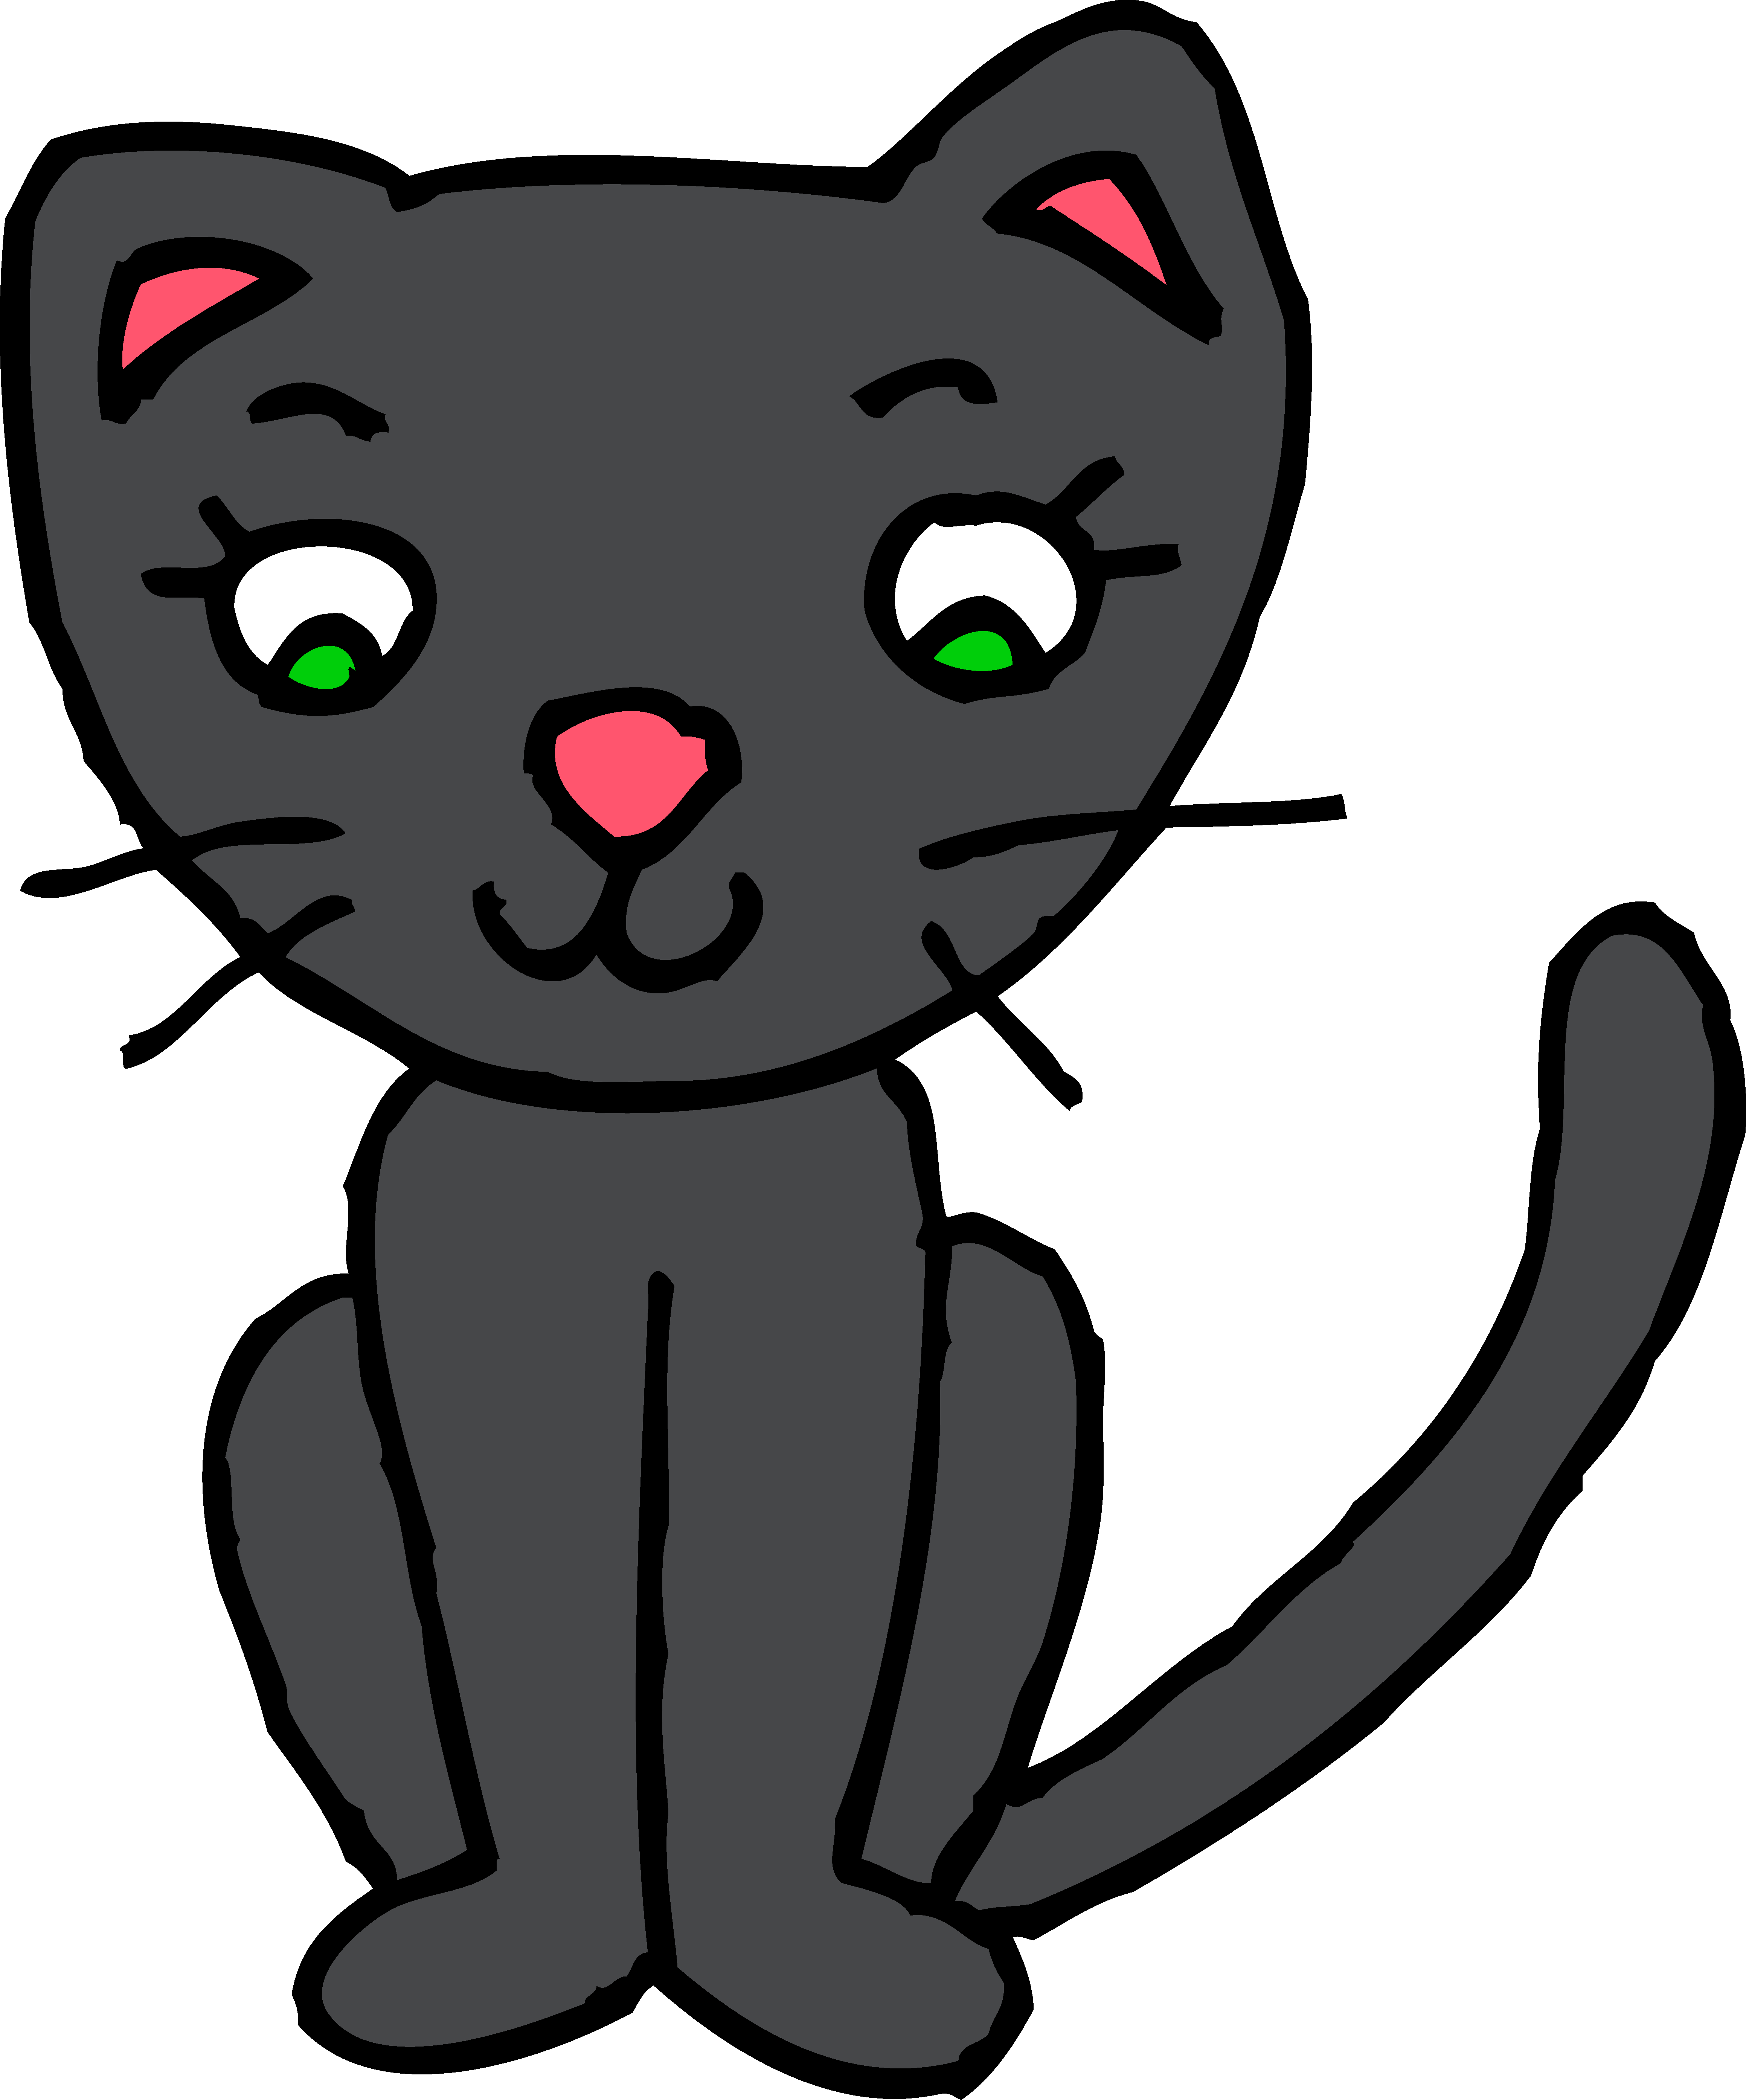 Cute Black Kitty Cat Clipart - Free Clip Art